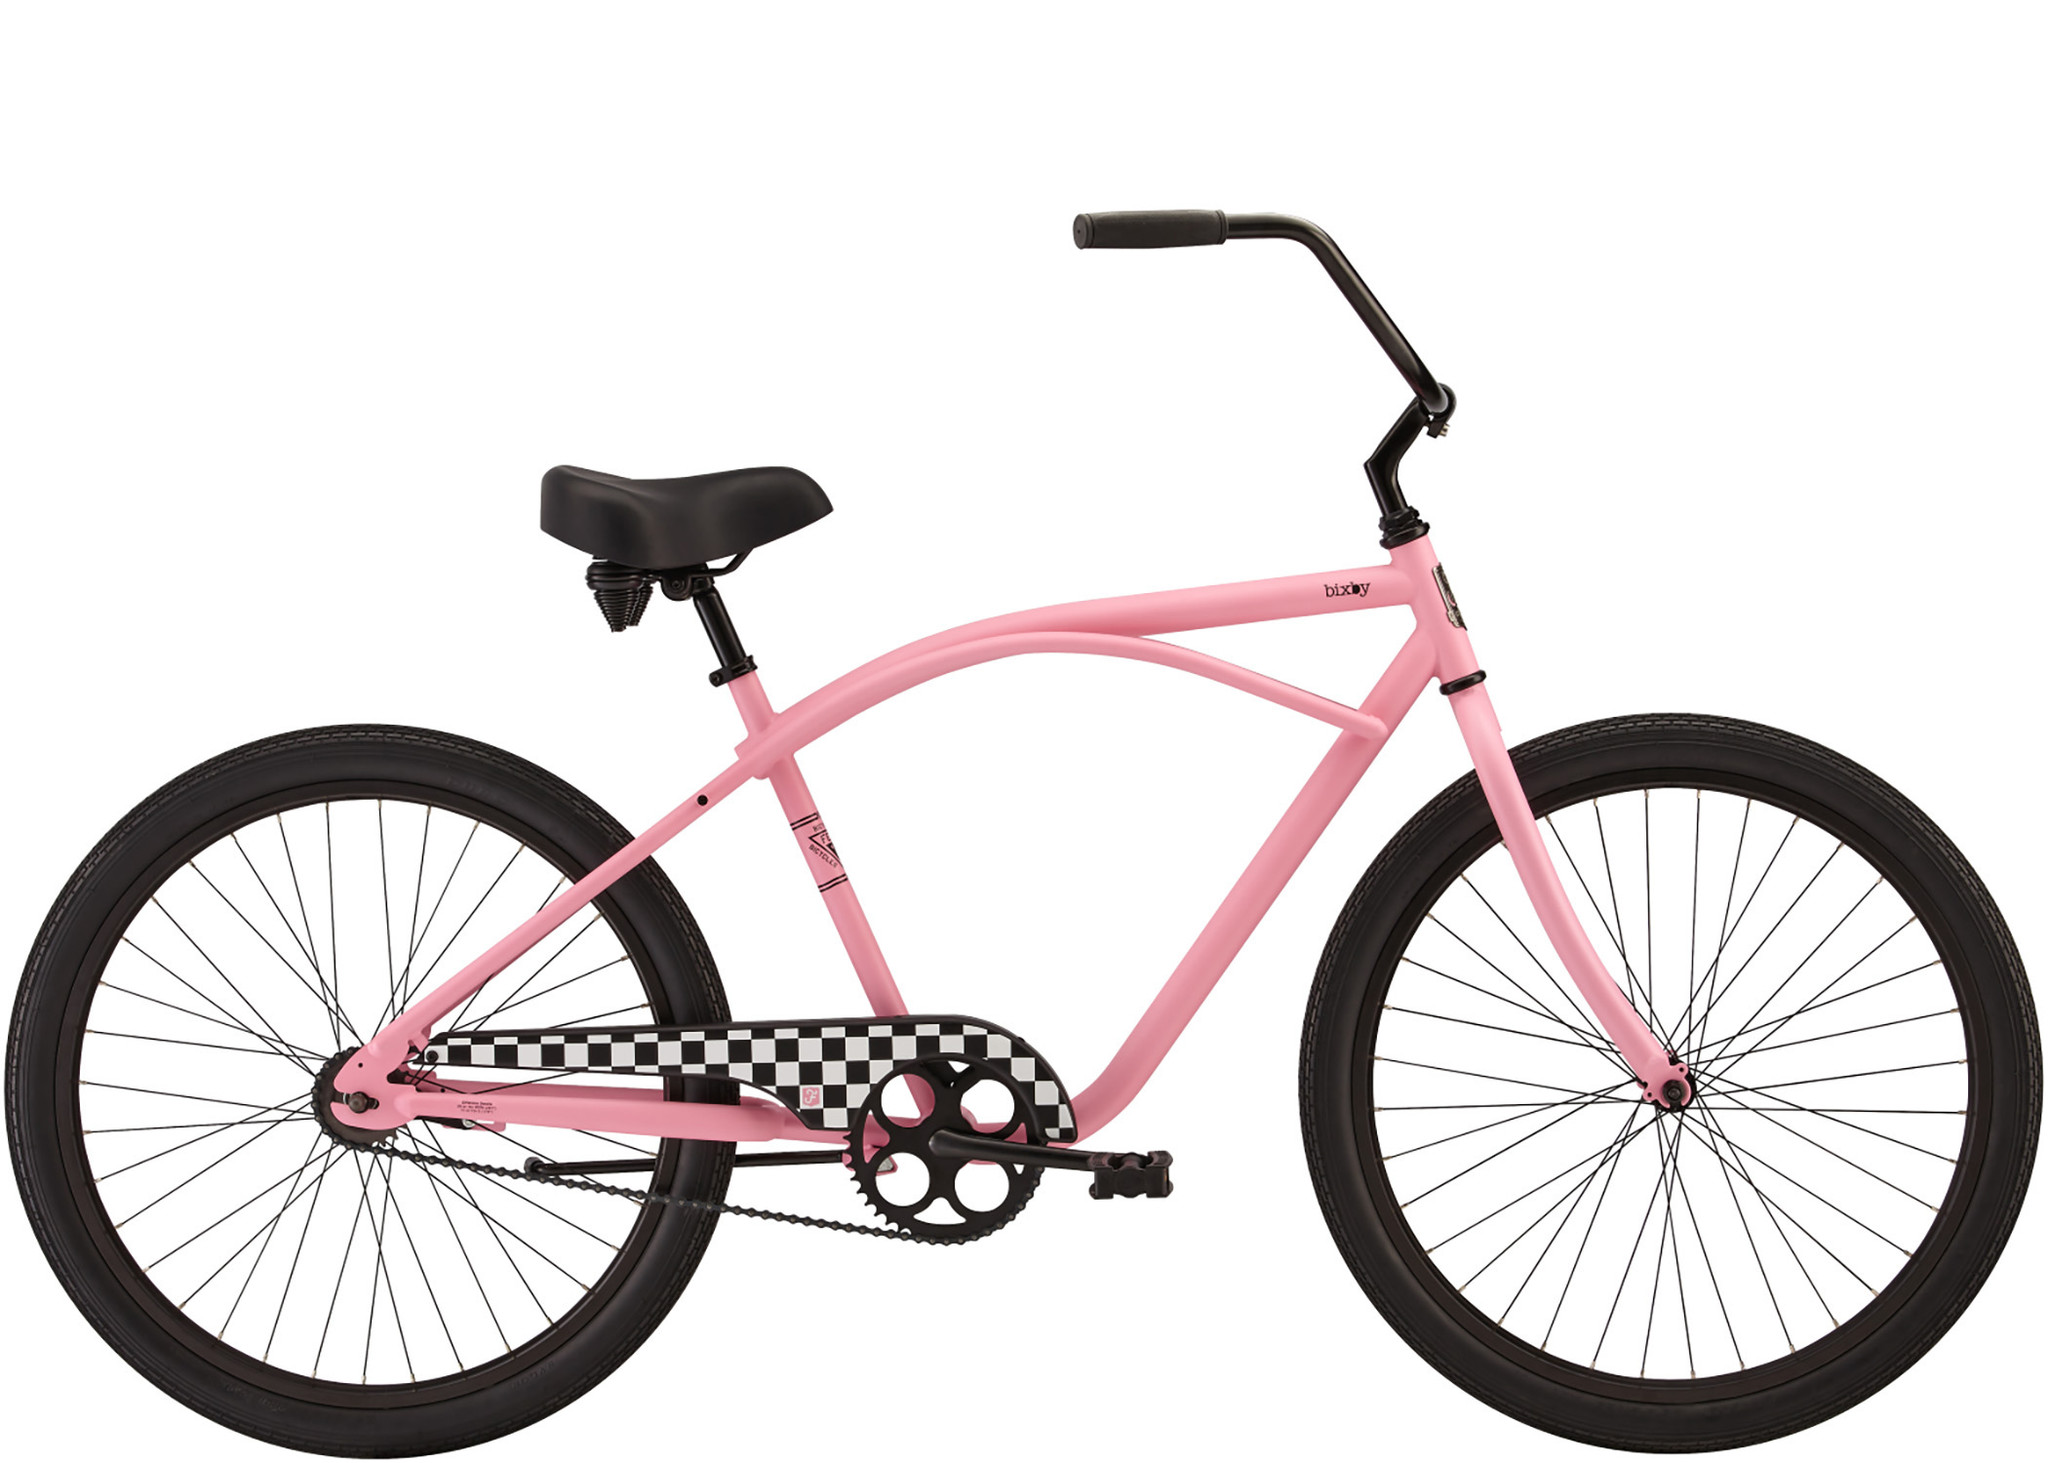 Felt Bixby cruiser series bike